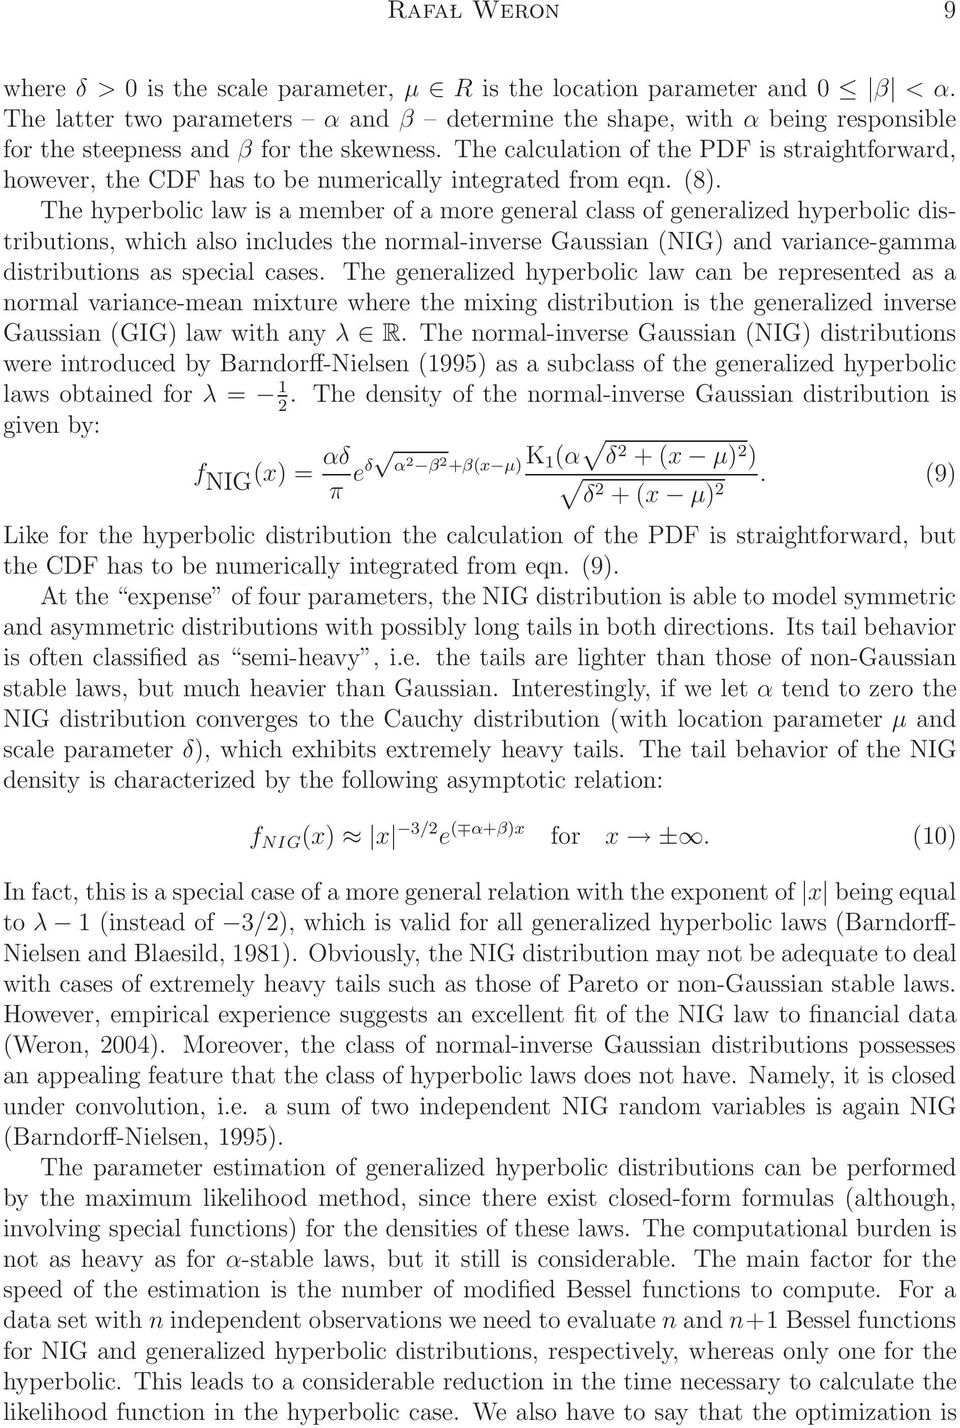 The calculation of the PDF is straightforward, however, the CDF has to be numerically integrated from eqn. (8).